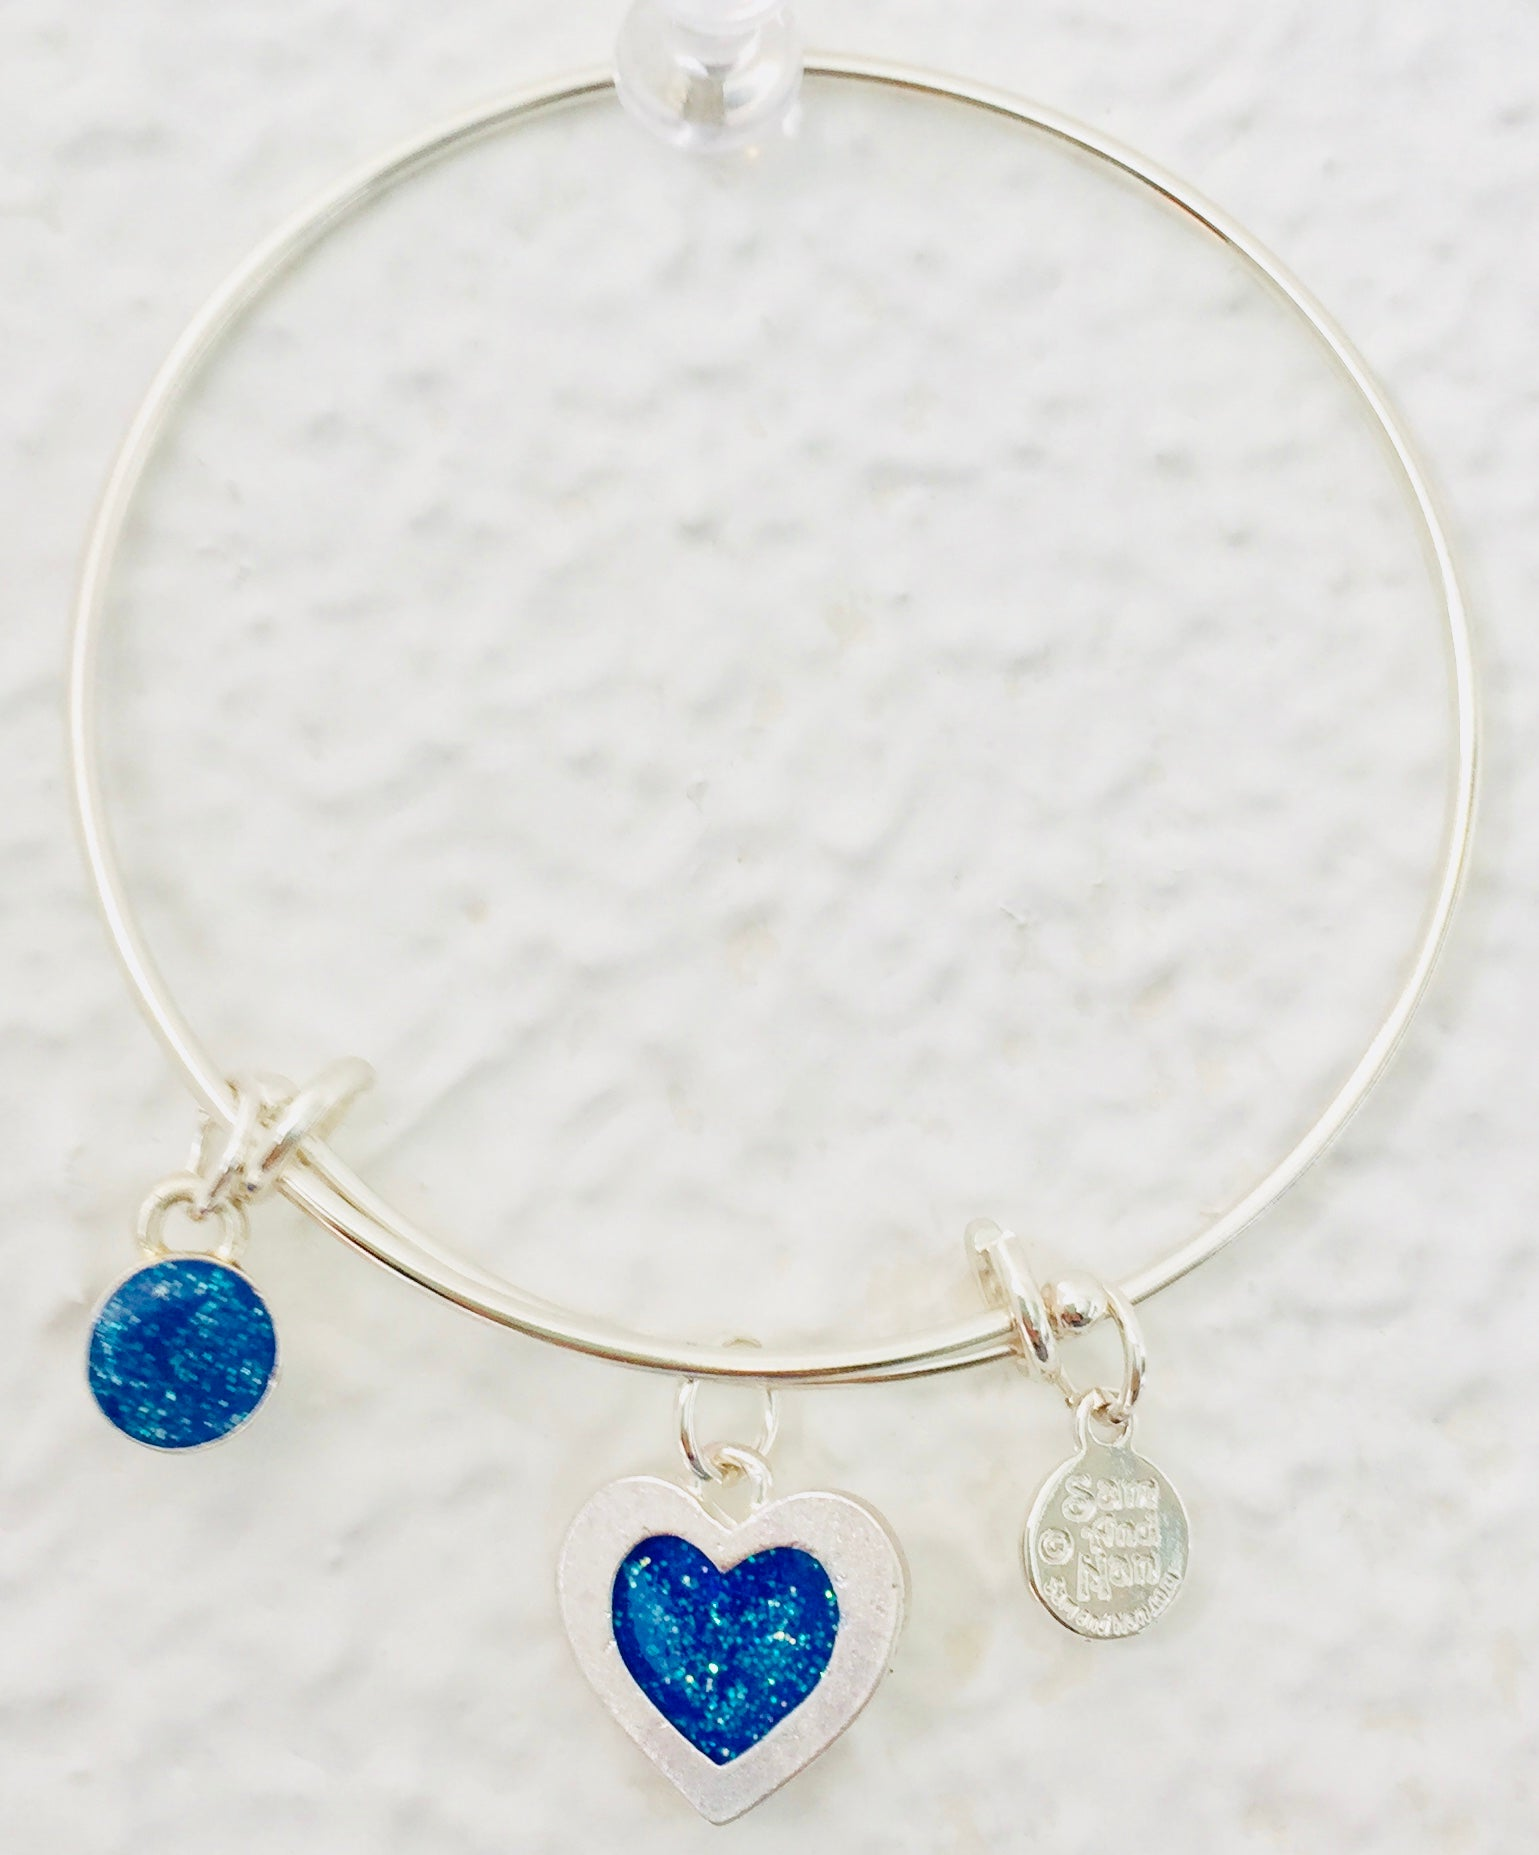 Valentine Blue Heart Bangle Bracelet